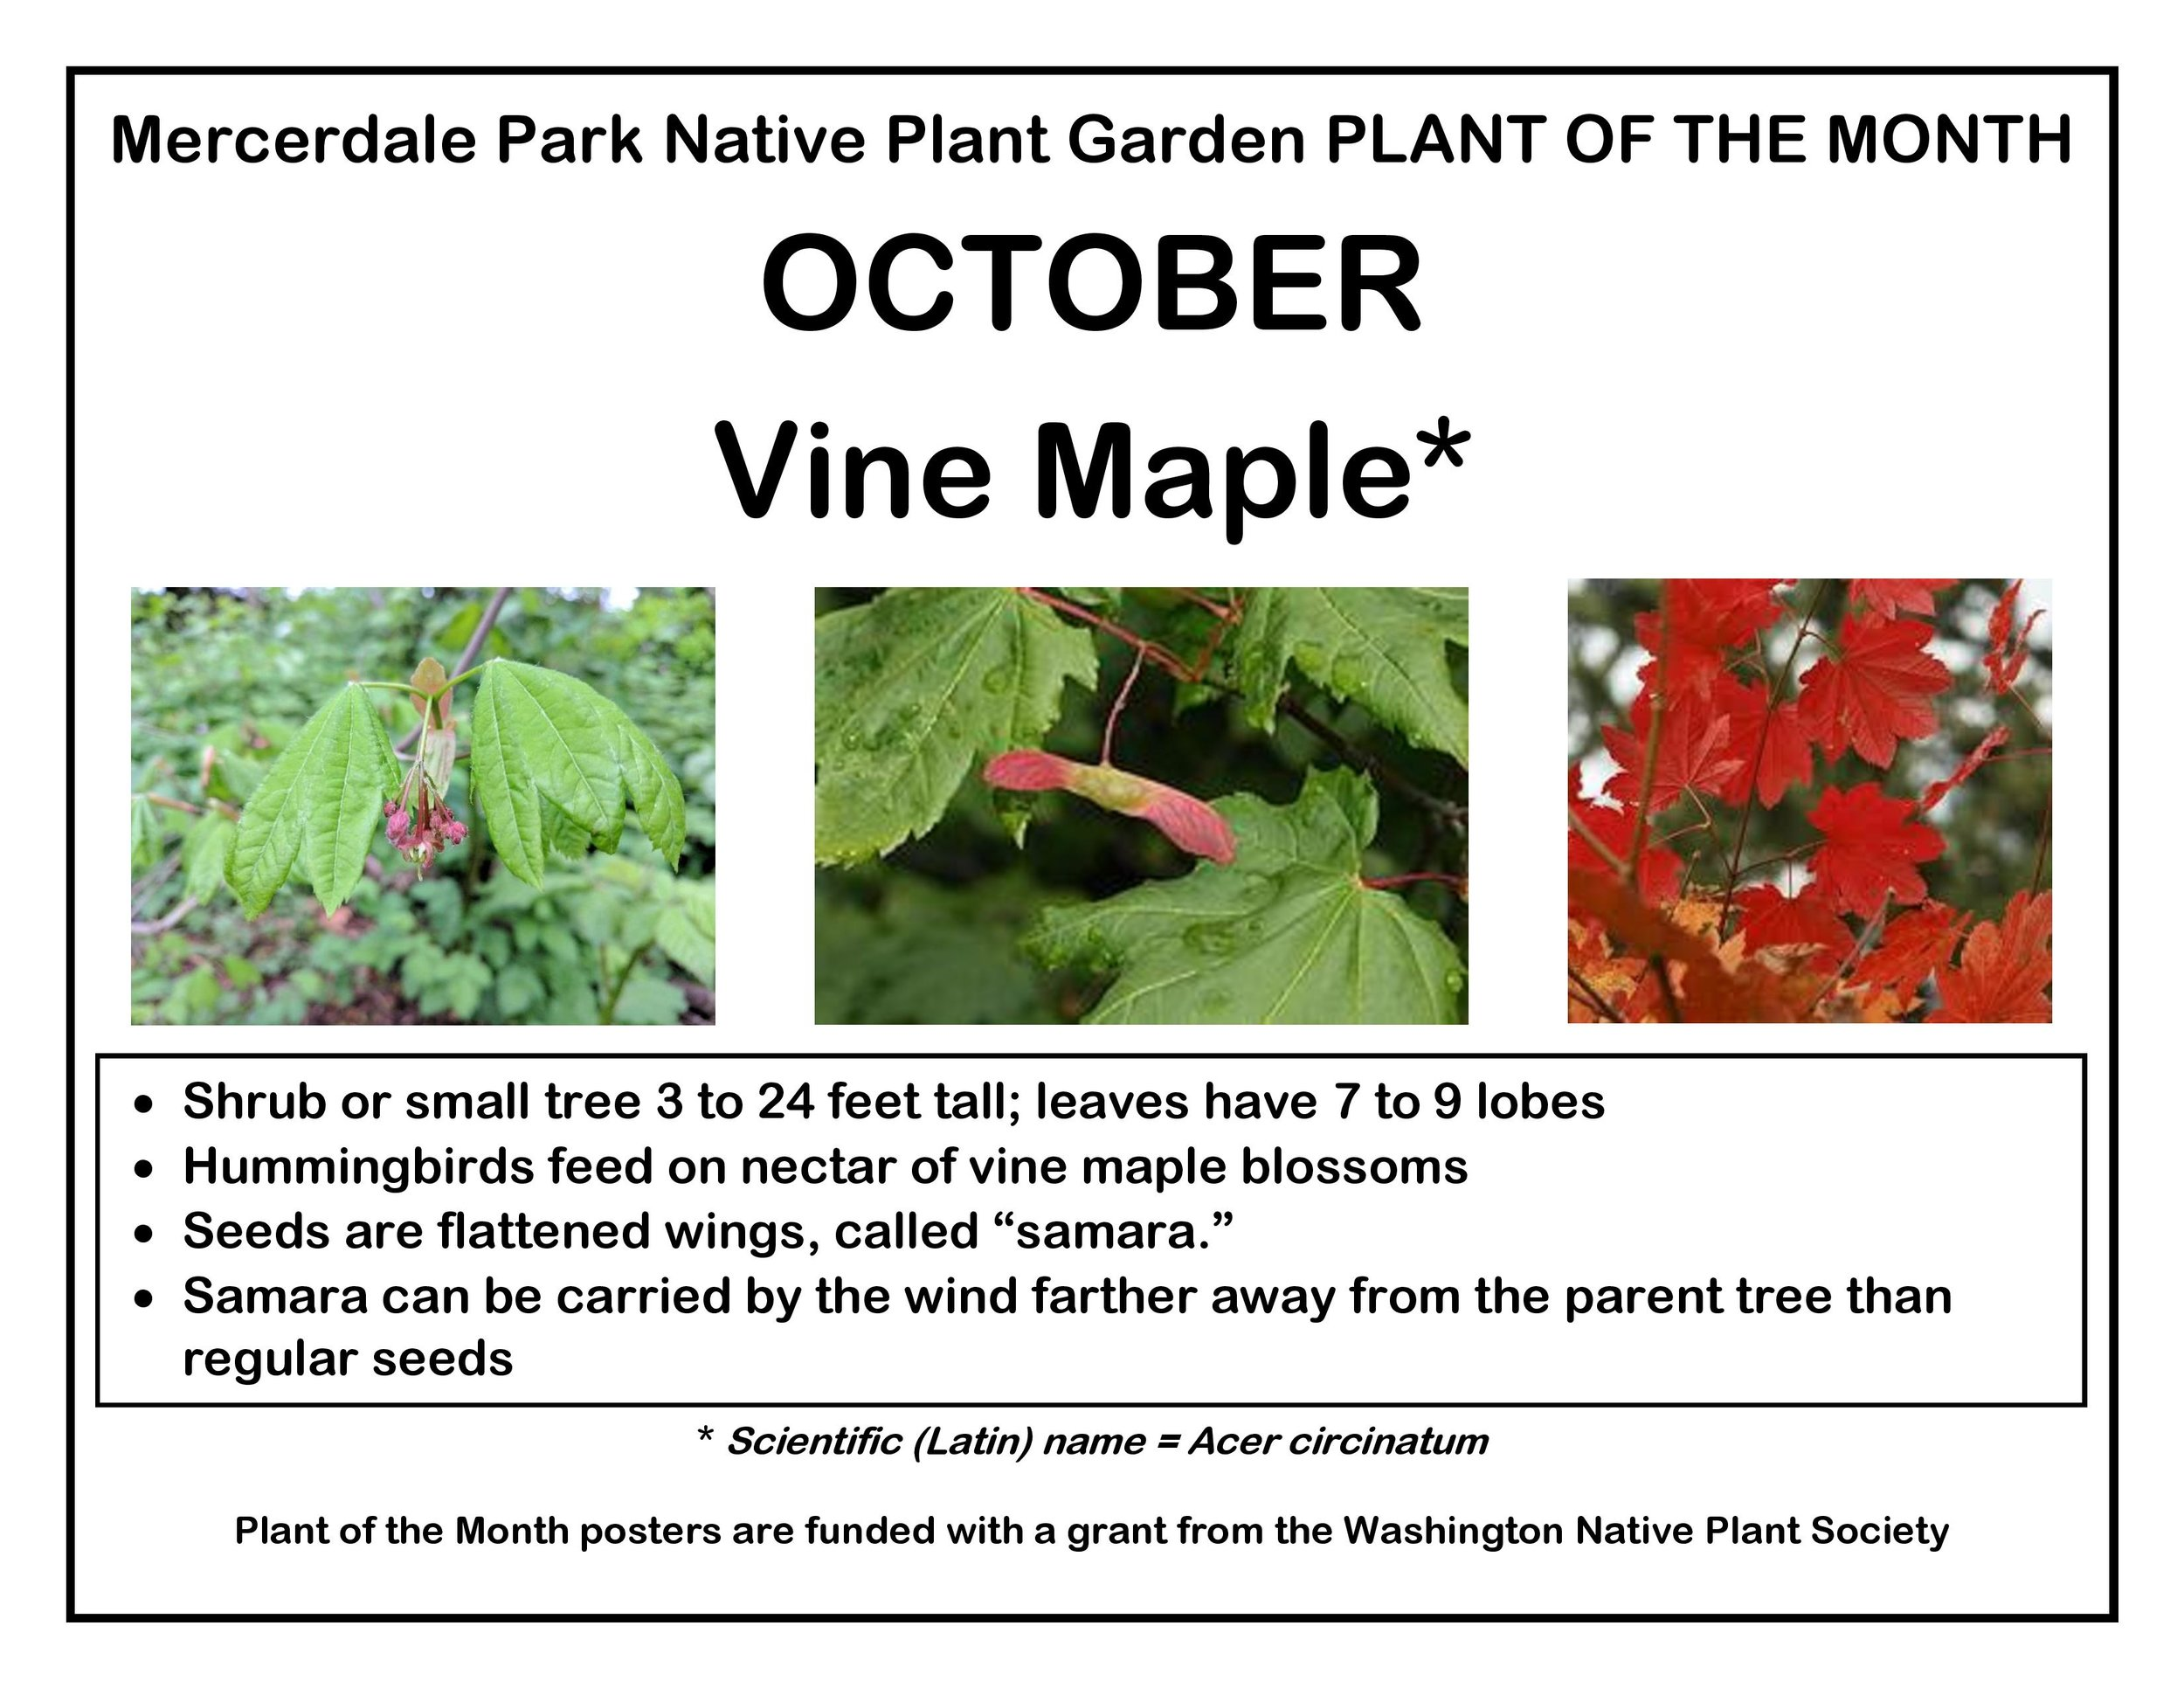 p PLANT OF THE MONTH 10 October Vine Maple v2-page-001.jpg